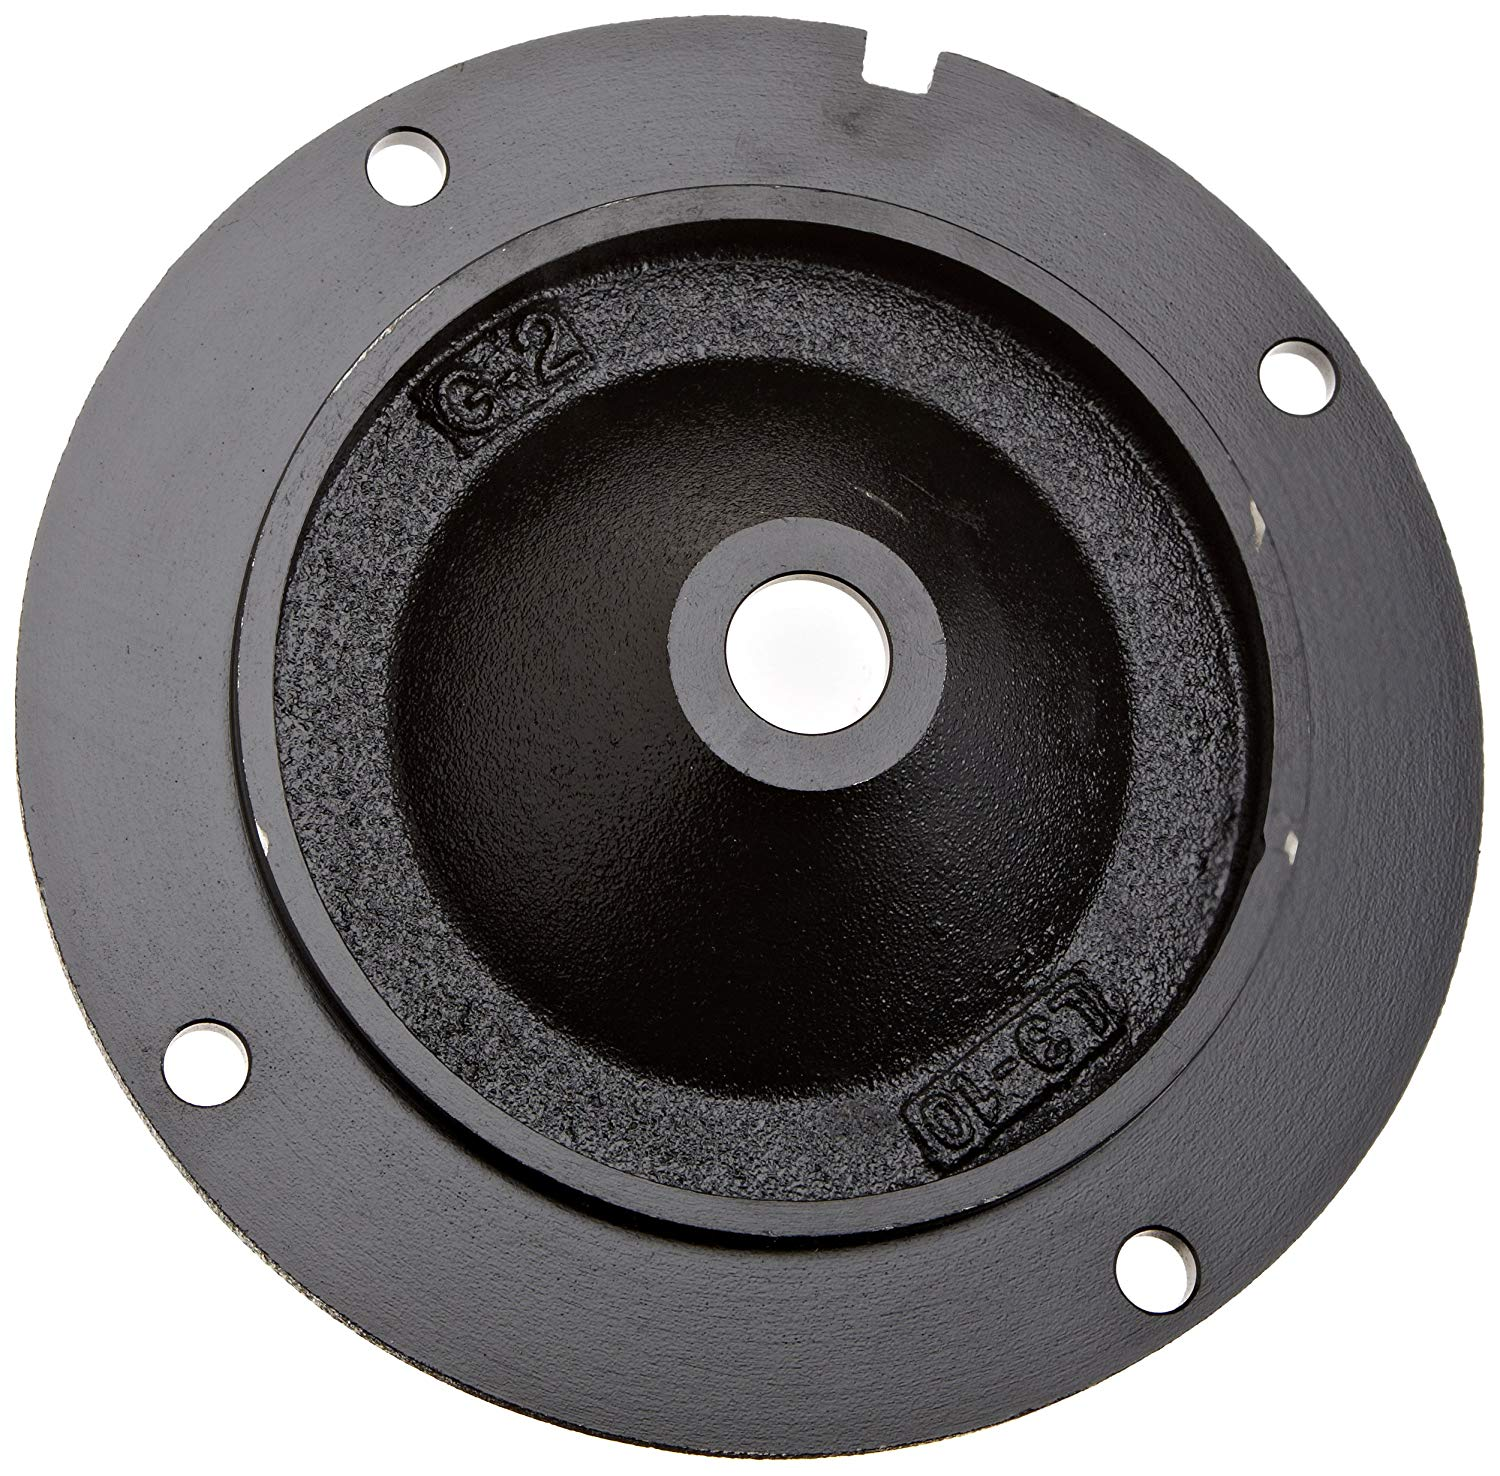 Pentair L3-10 Seal Plate Assembly Replacement Pool and Spa Pump